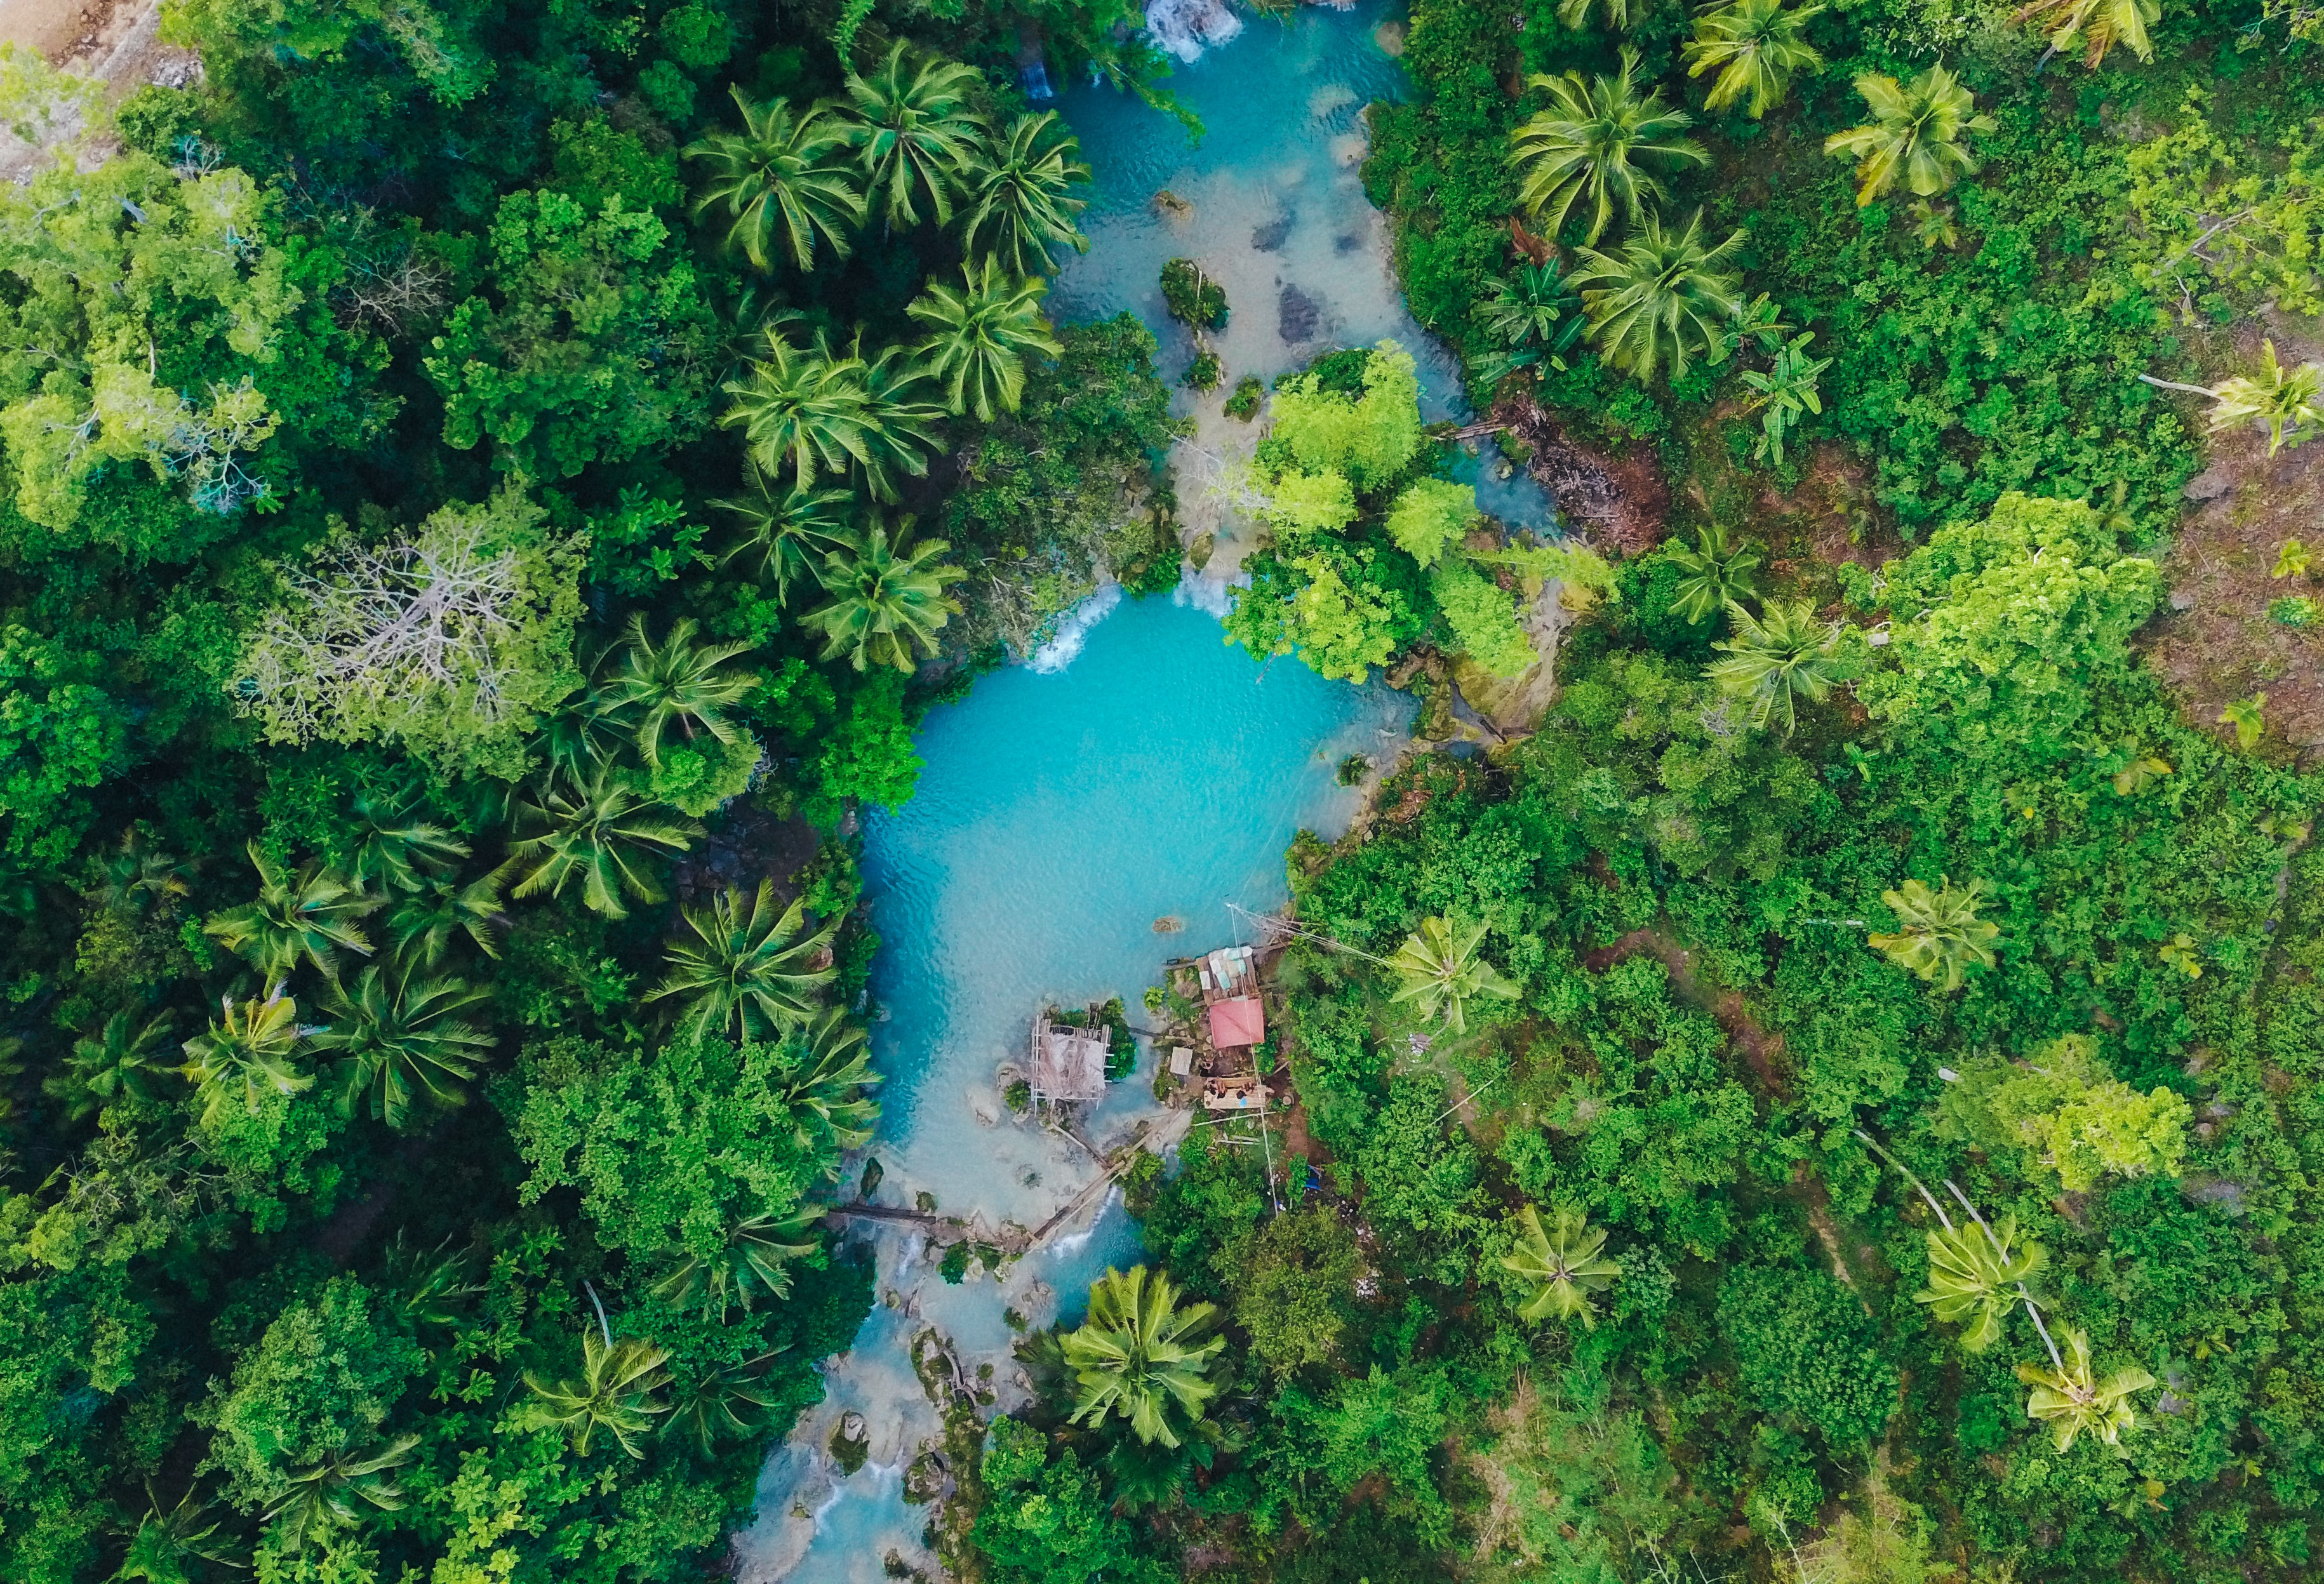 Drone view of a tropical forest resort area.